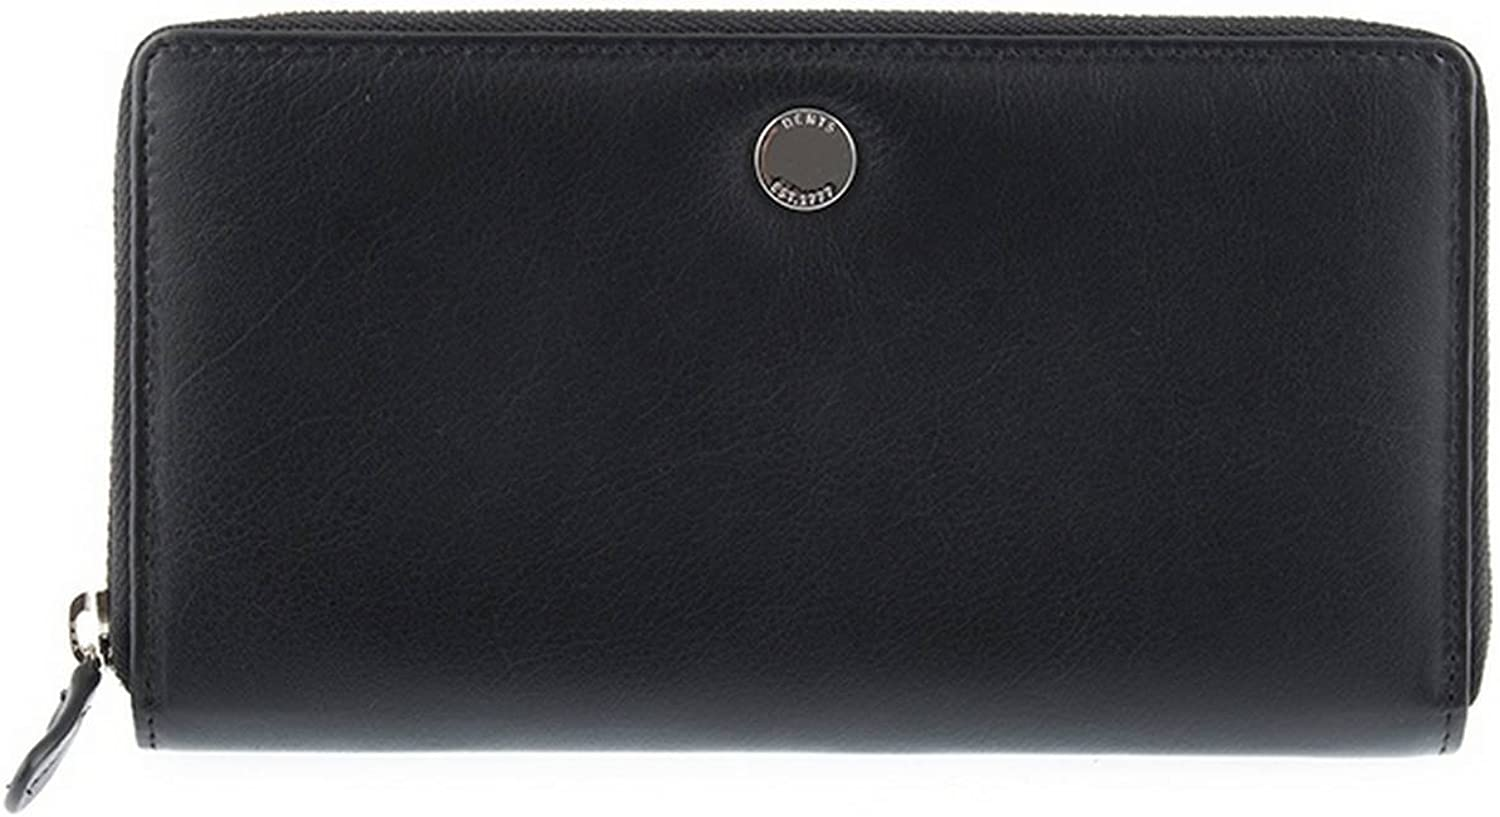 Dents Womens Large Smooth Leather Purse  Black